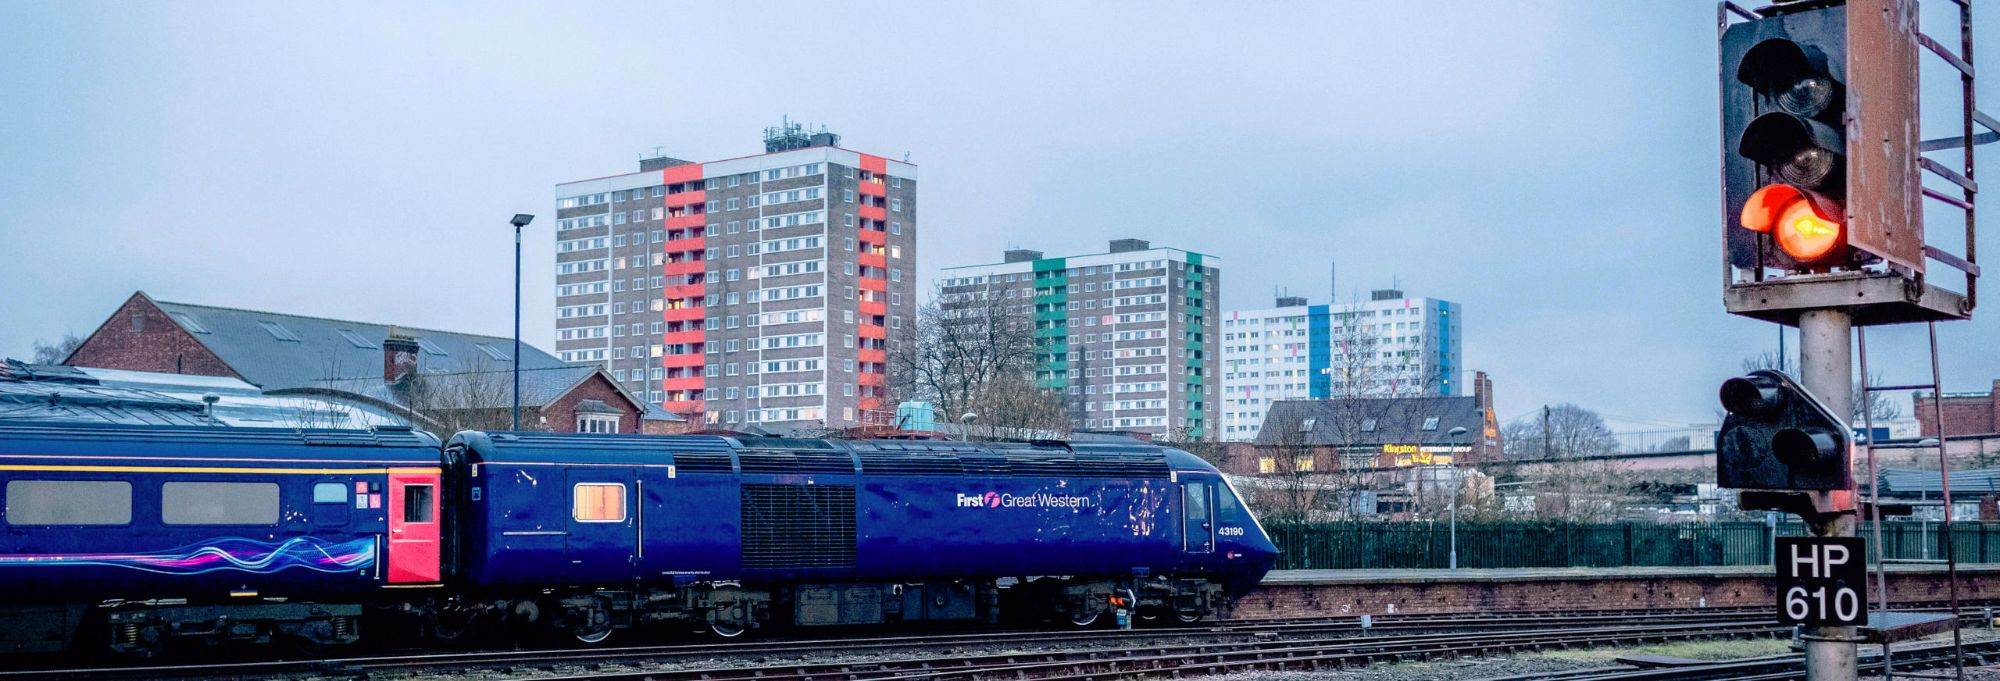 Image showing an on loan HST at Hull Paragon